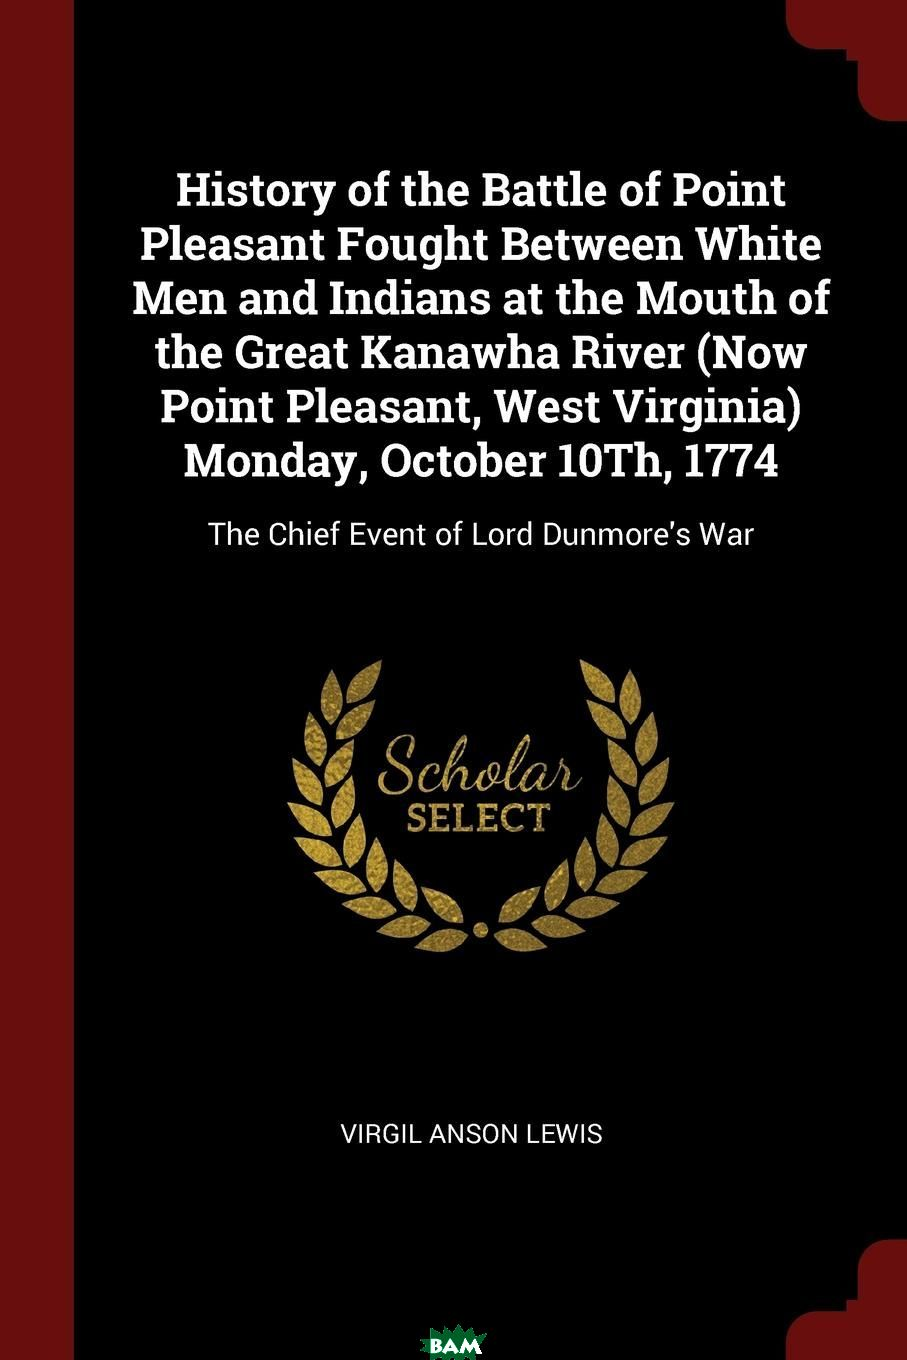 Купить History of the Battle of Point Pleasant Fought Between White Men and Indians at the Mouth of the Great Kanawha River (Now Point Pleasant, West Virginia) Monday, October 10Th, 1774. The Chief Event of, Virgil Anson Lewis, 9781375555159